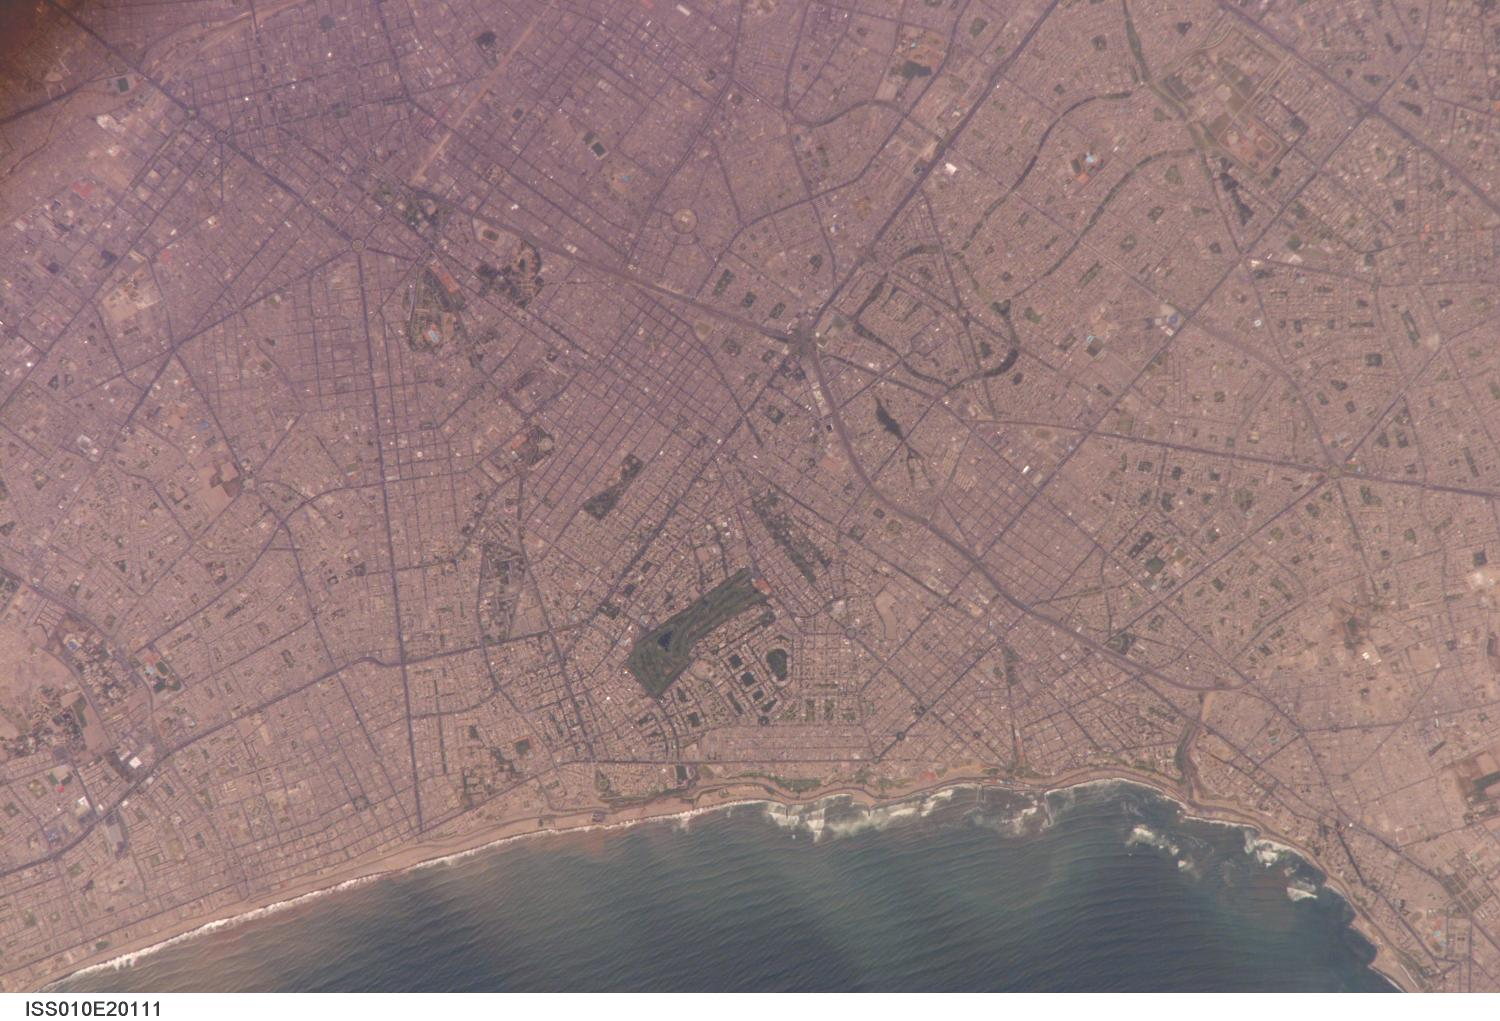 Satellite Image, Photo of Lima Metropolitan Area, Peru